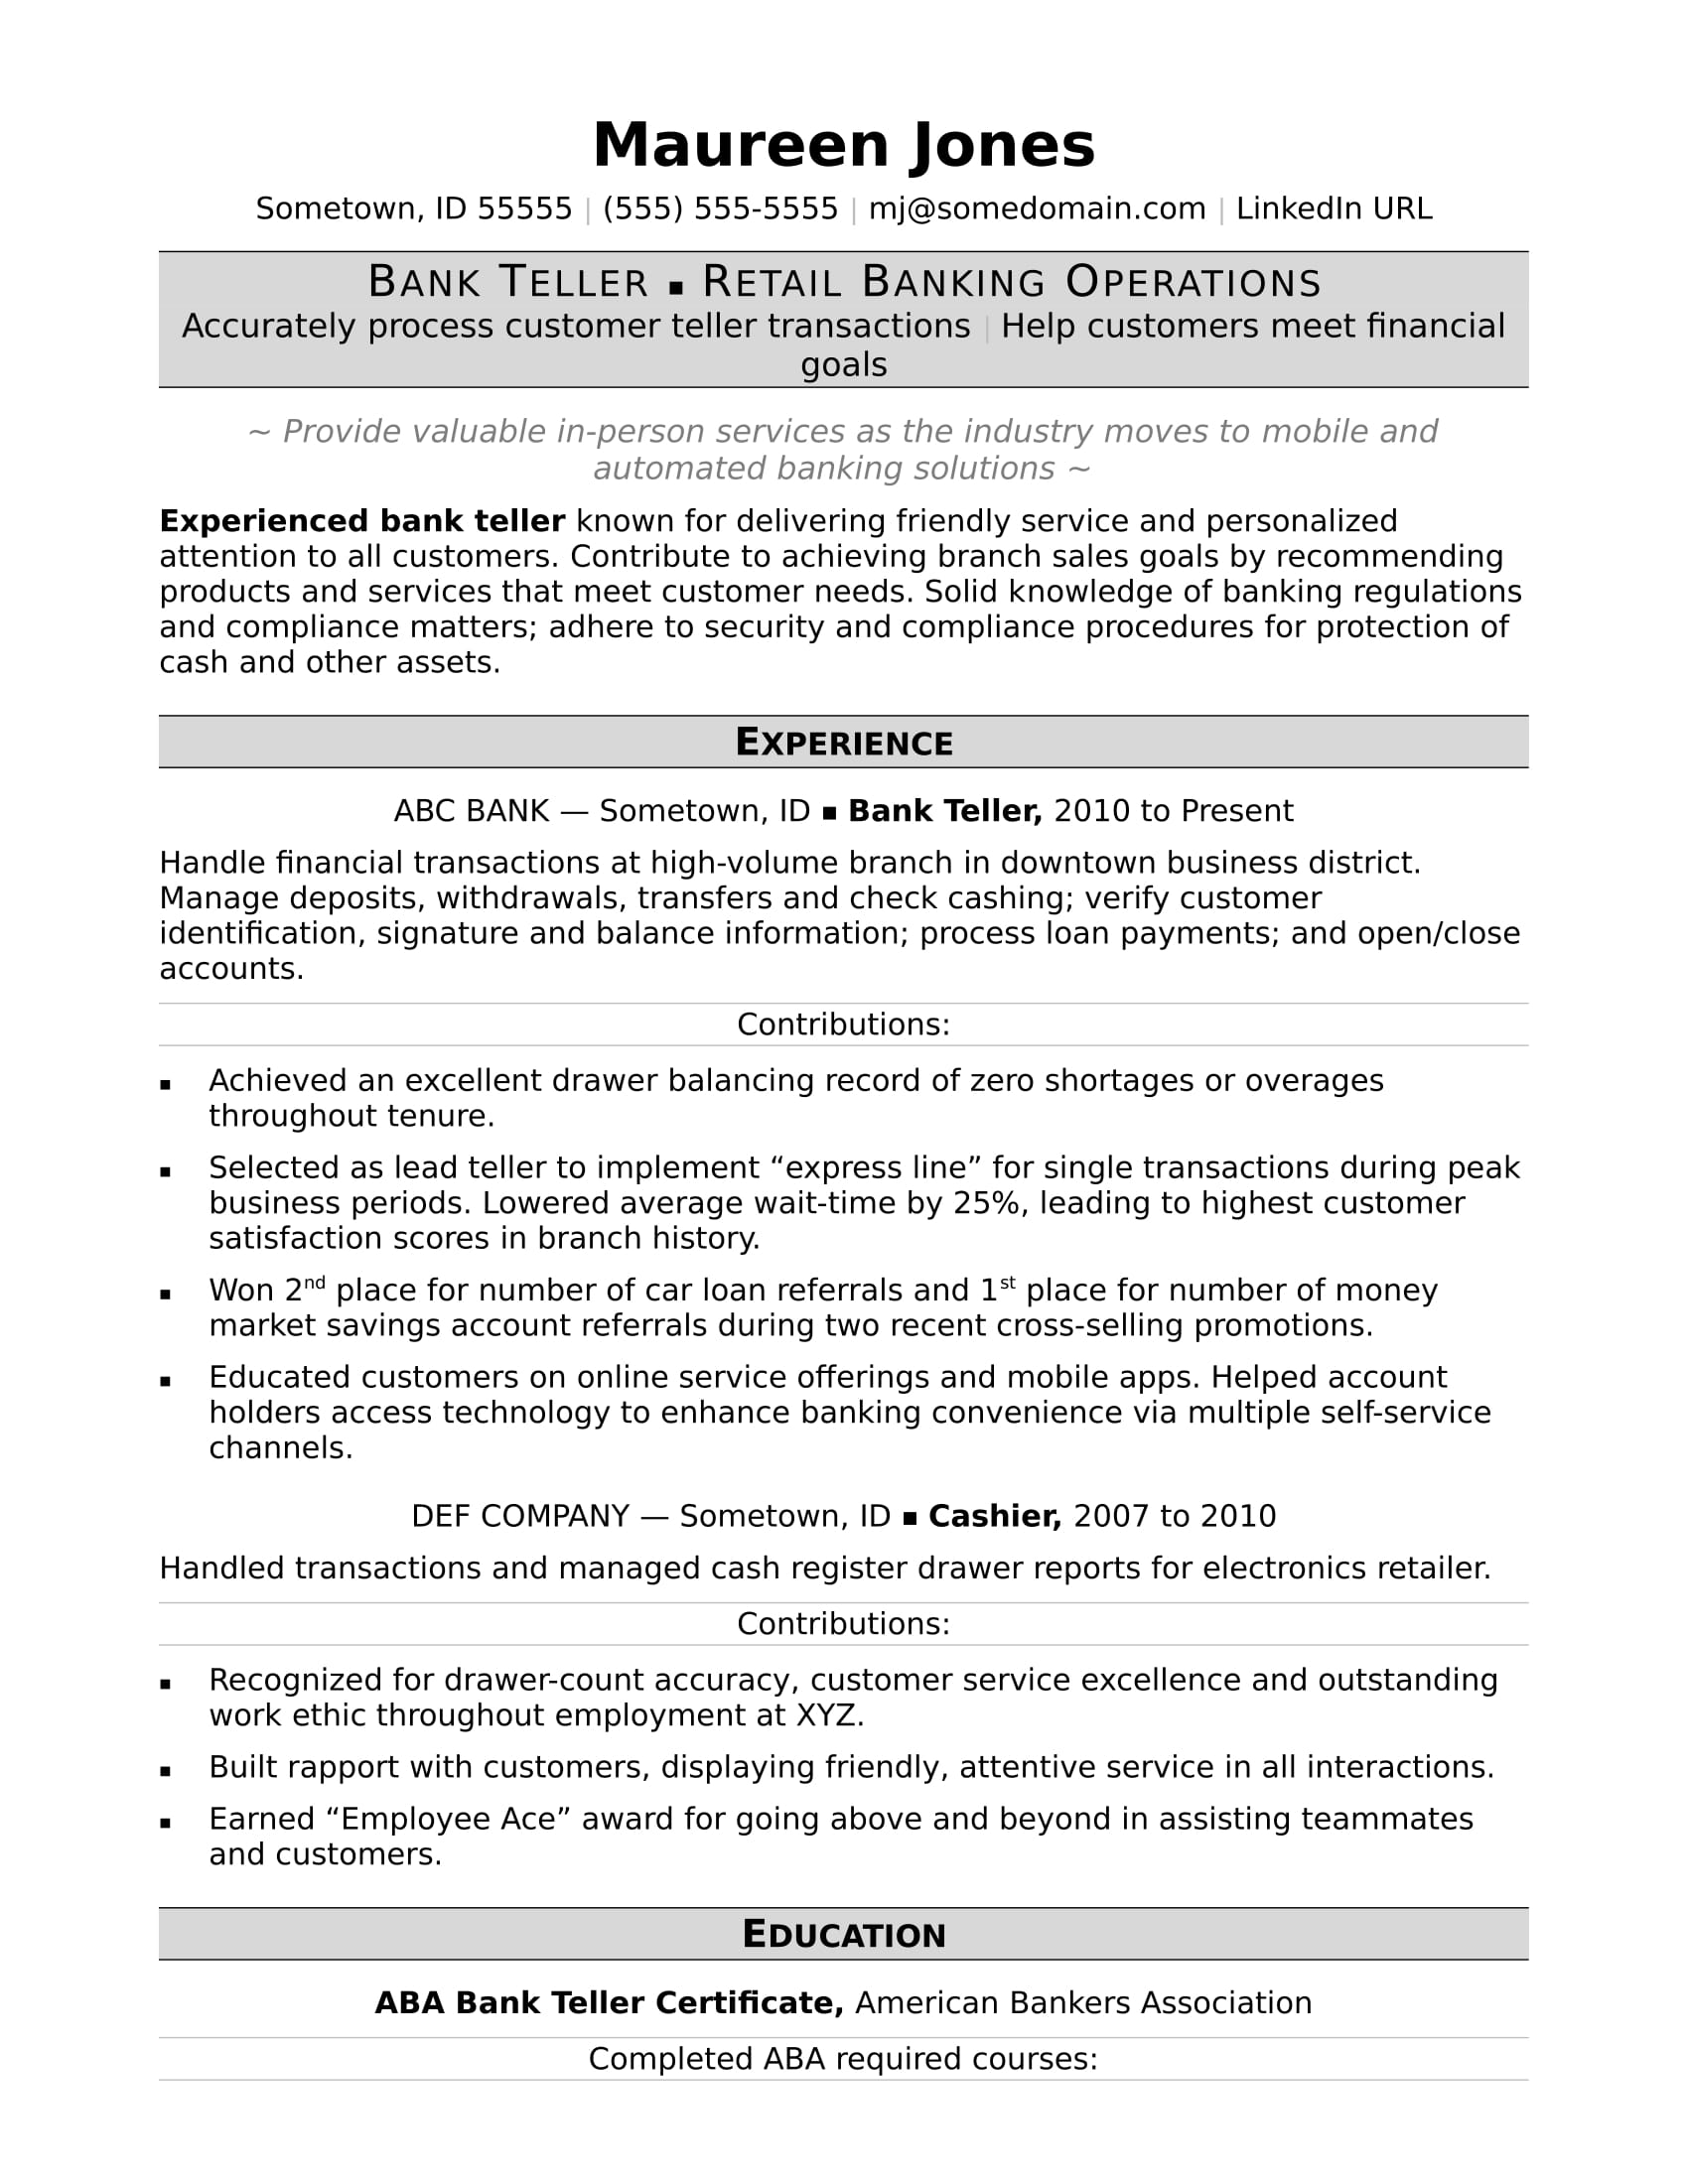 resume Resume Examples Bank Teller bank teller resume sample monster com sample